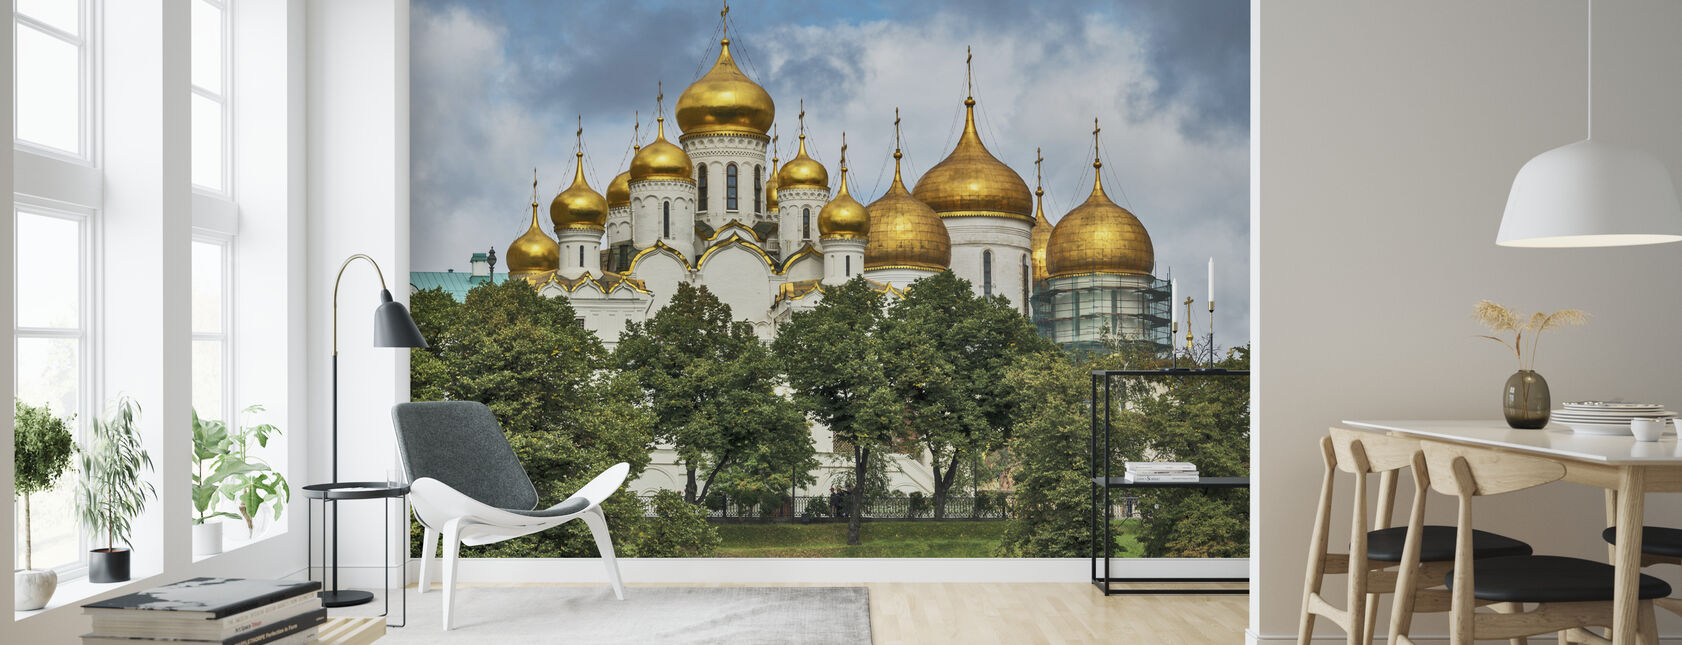 The Kremlin Cathedrals - Wallpaper - Living Room